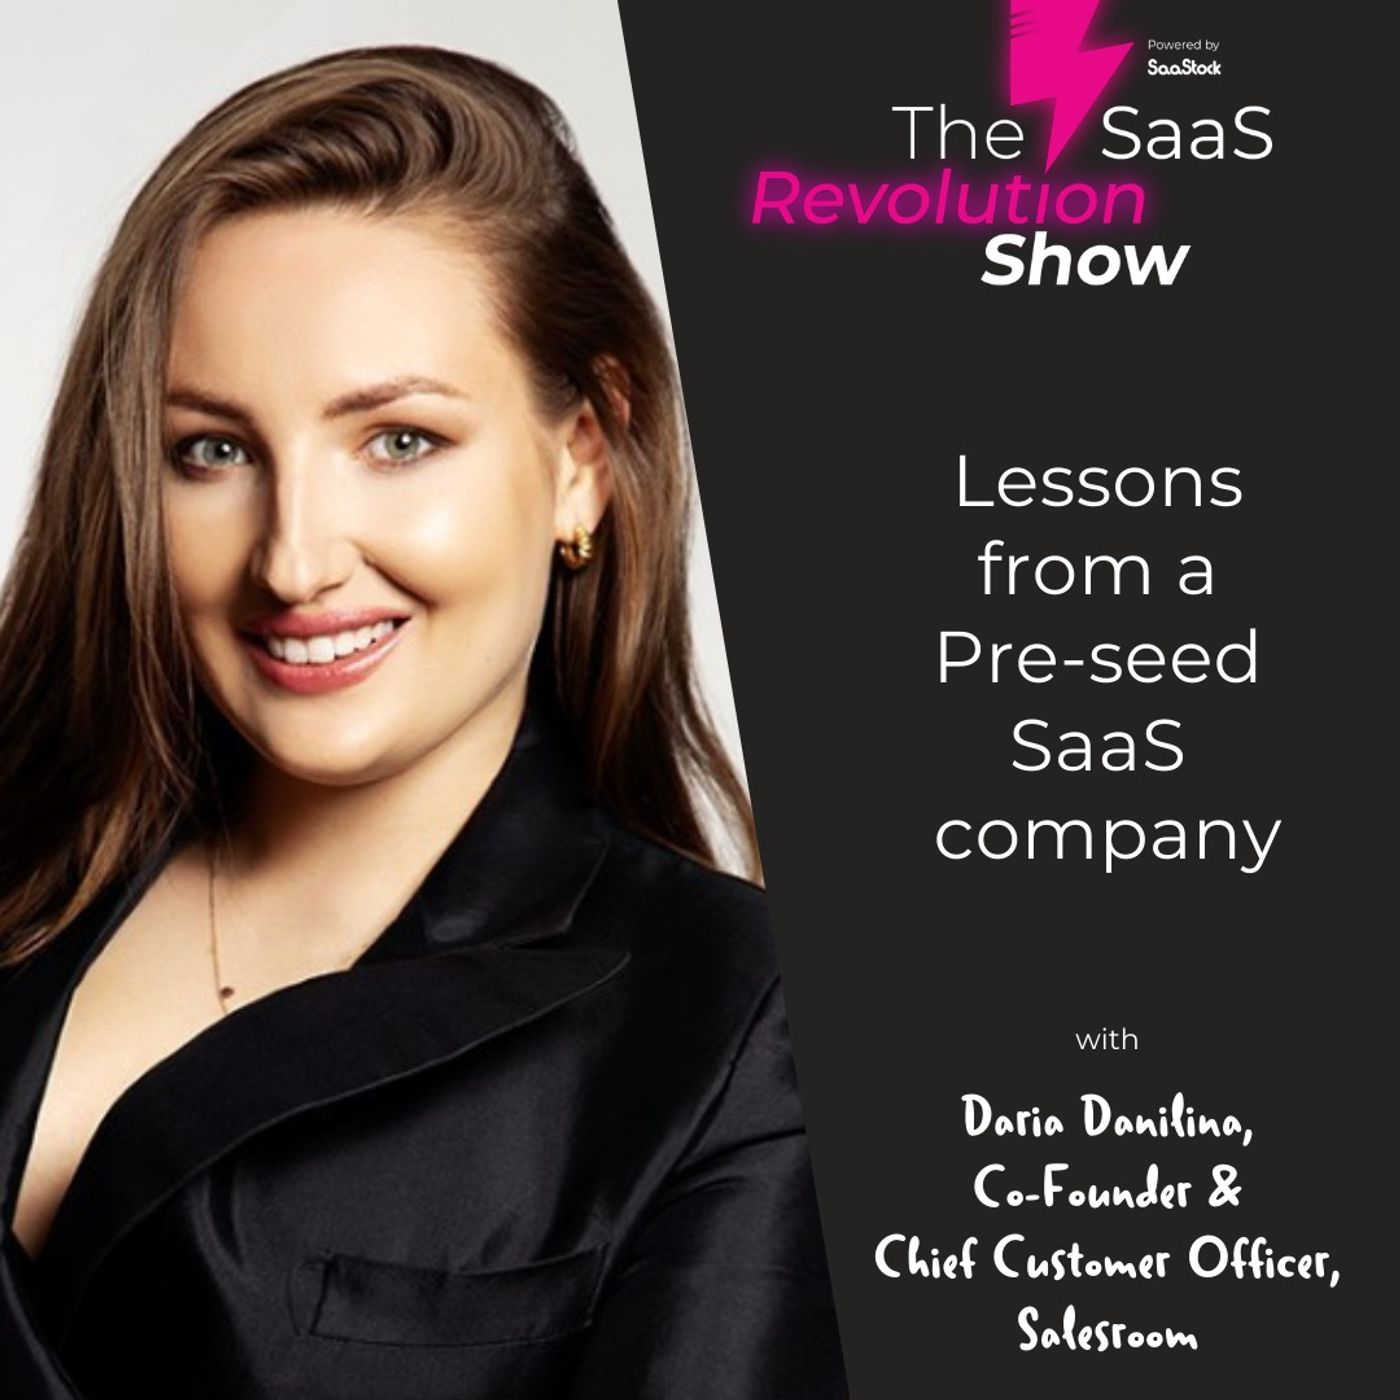 Lessons from a Pre-seed SaaS company, with Daria Danilina, Salesroom